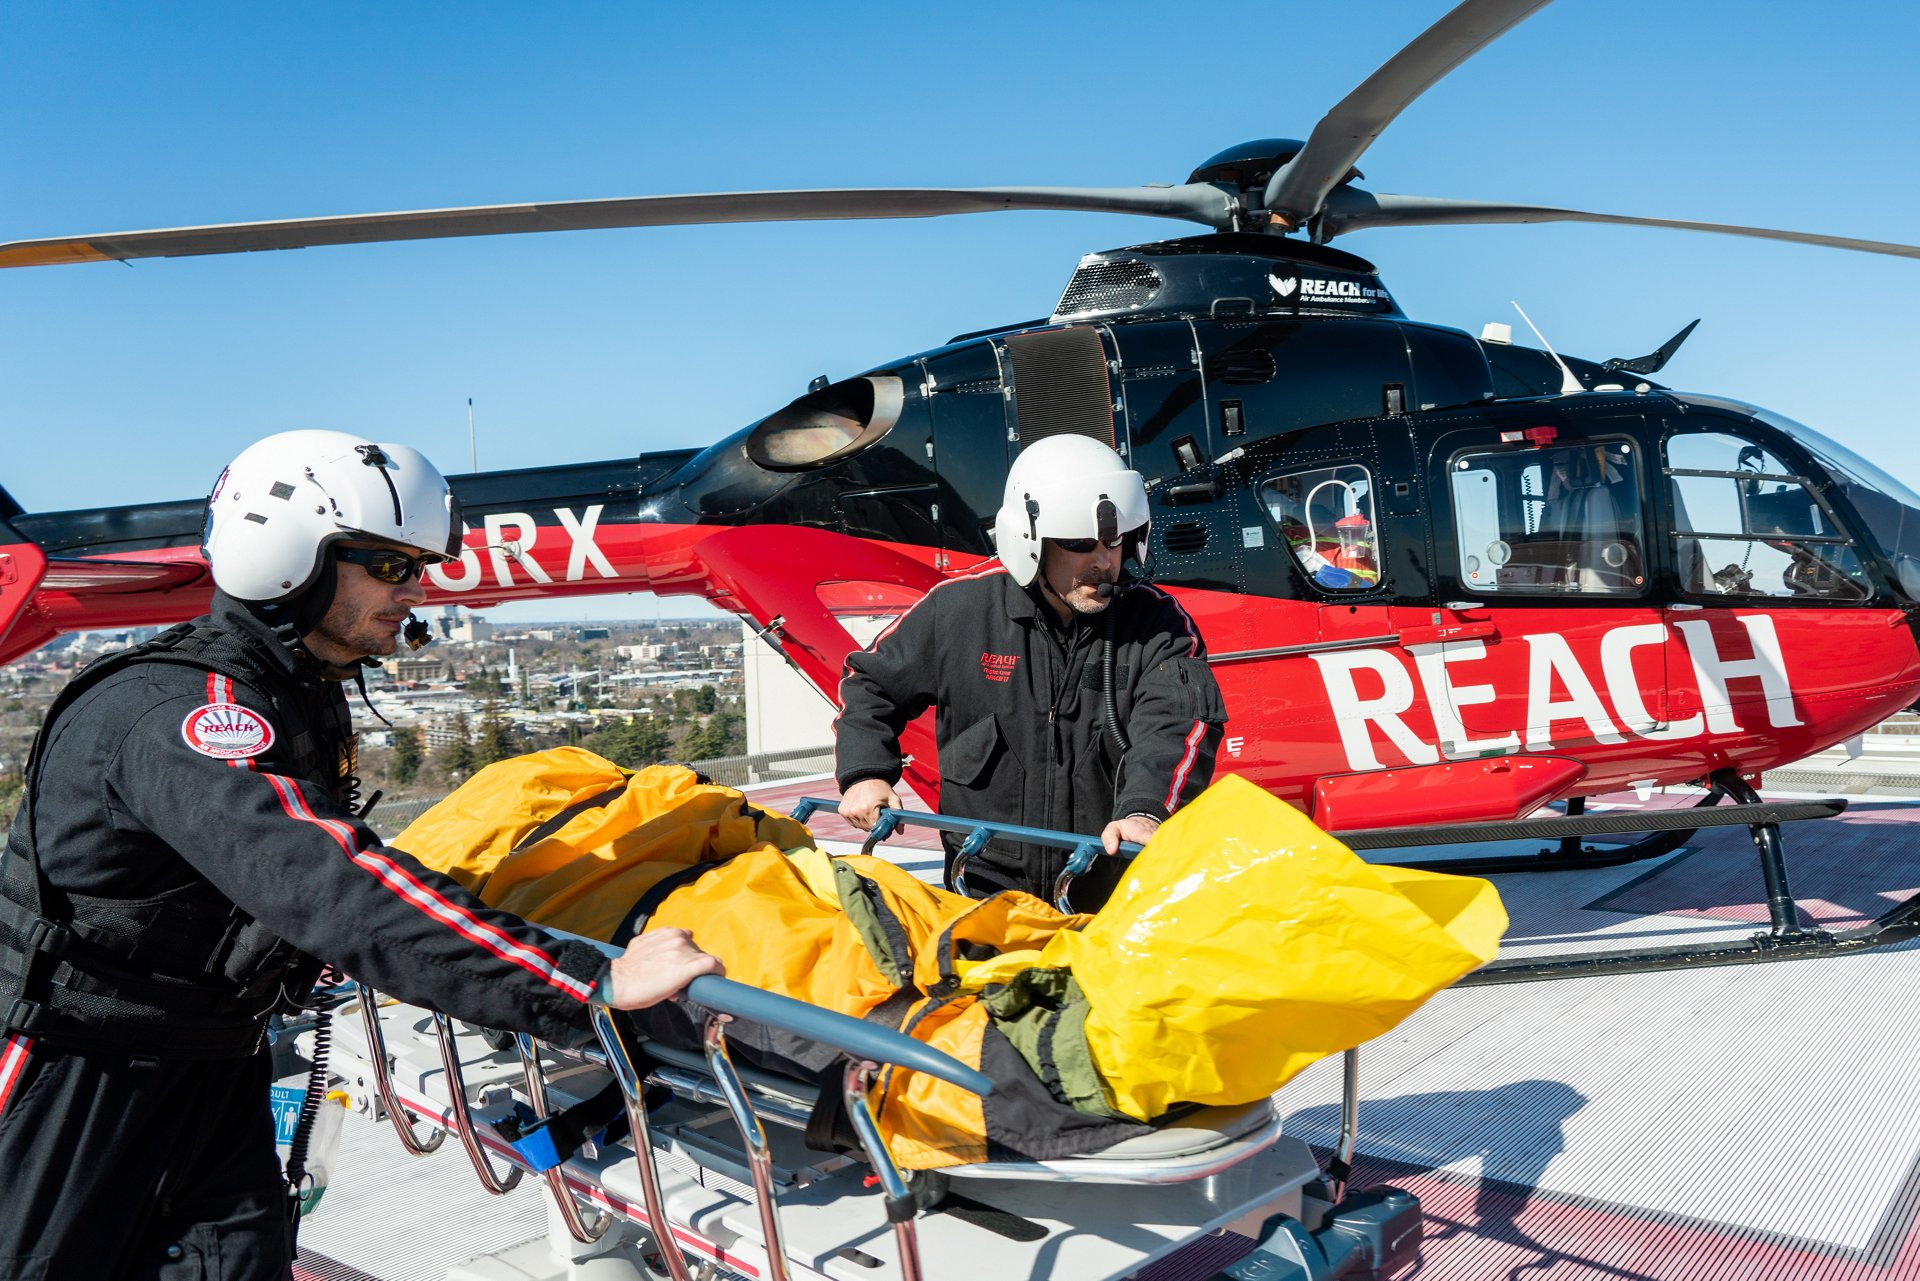 The company's six air-based subsidiaries and dozens of ground ambulances provide emergency medical transport for 46 states and the District of Columbia.